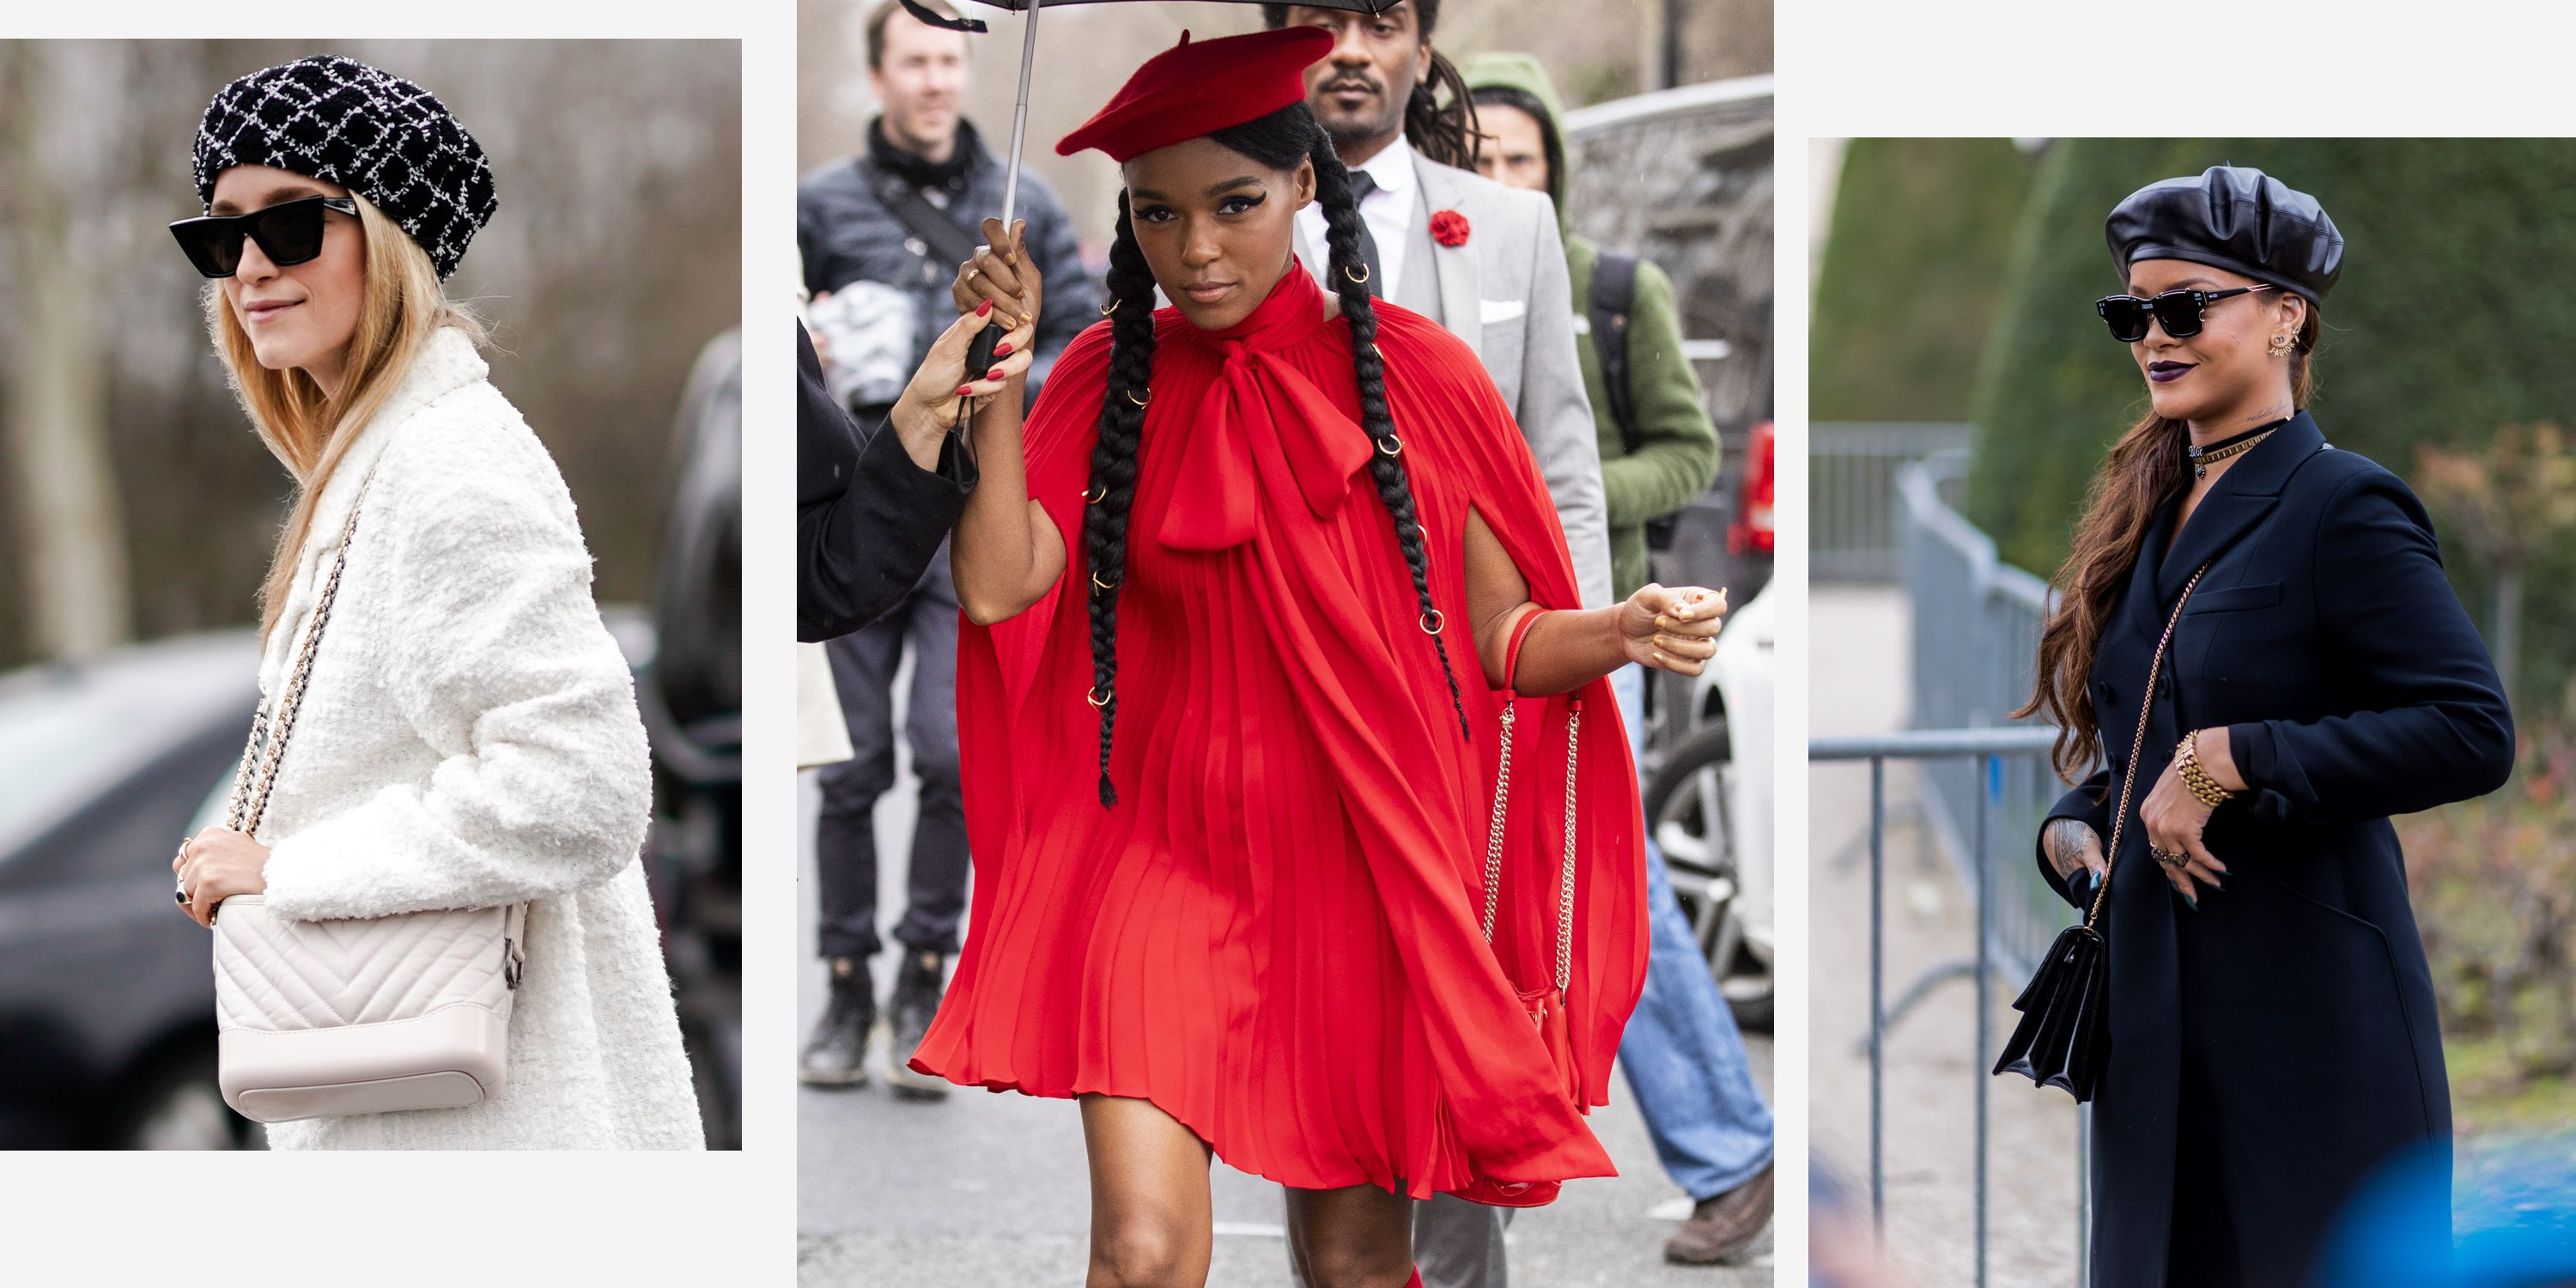 Beret Style Inspiration - How to Wear a Beret